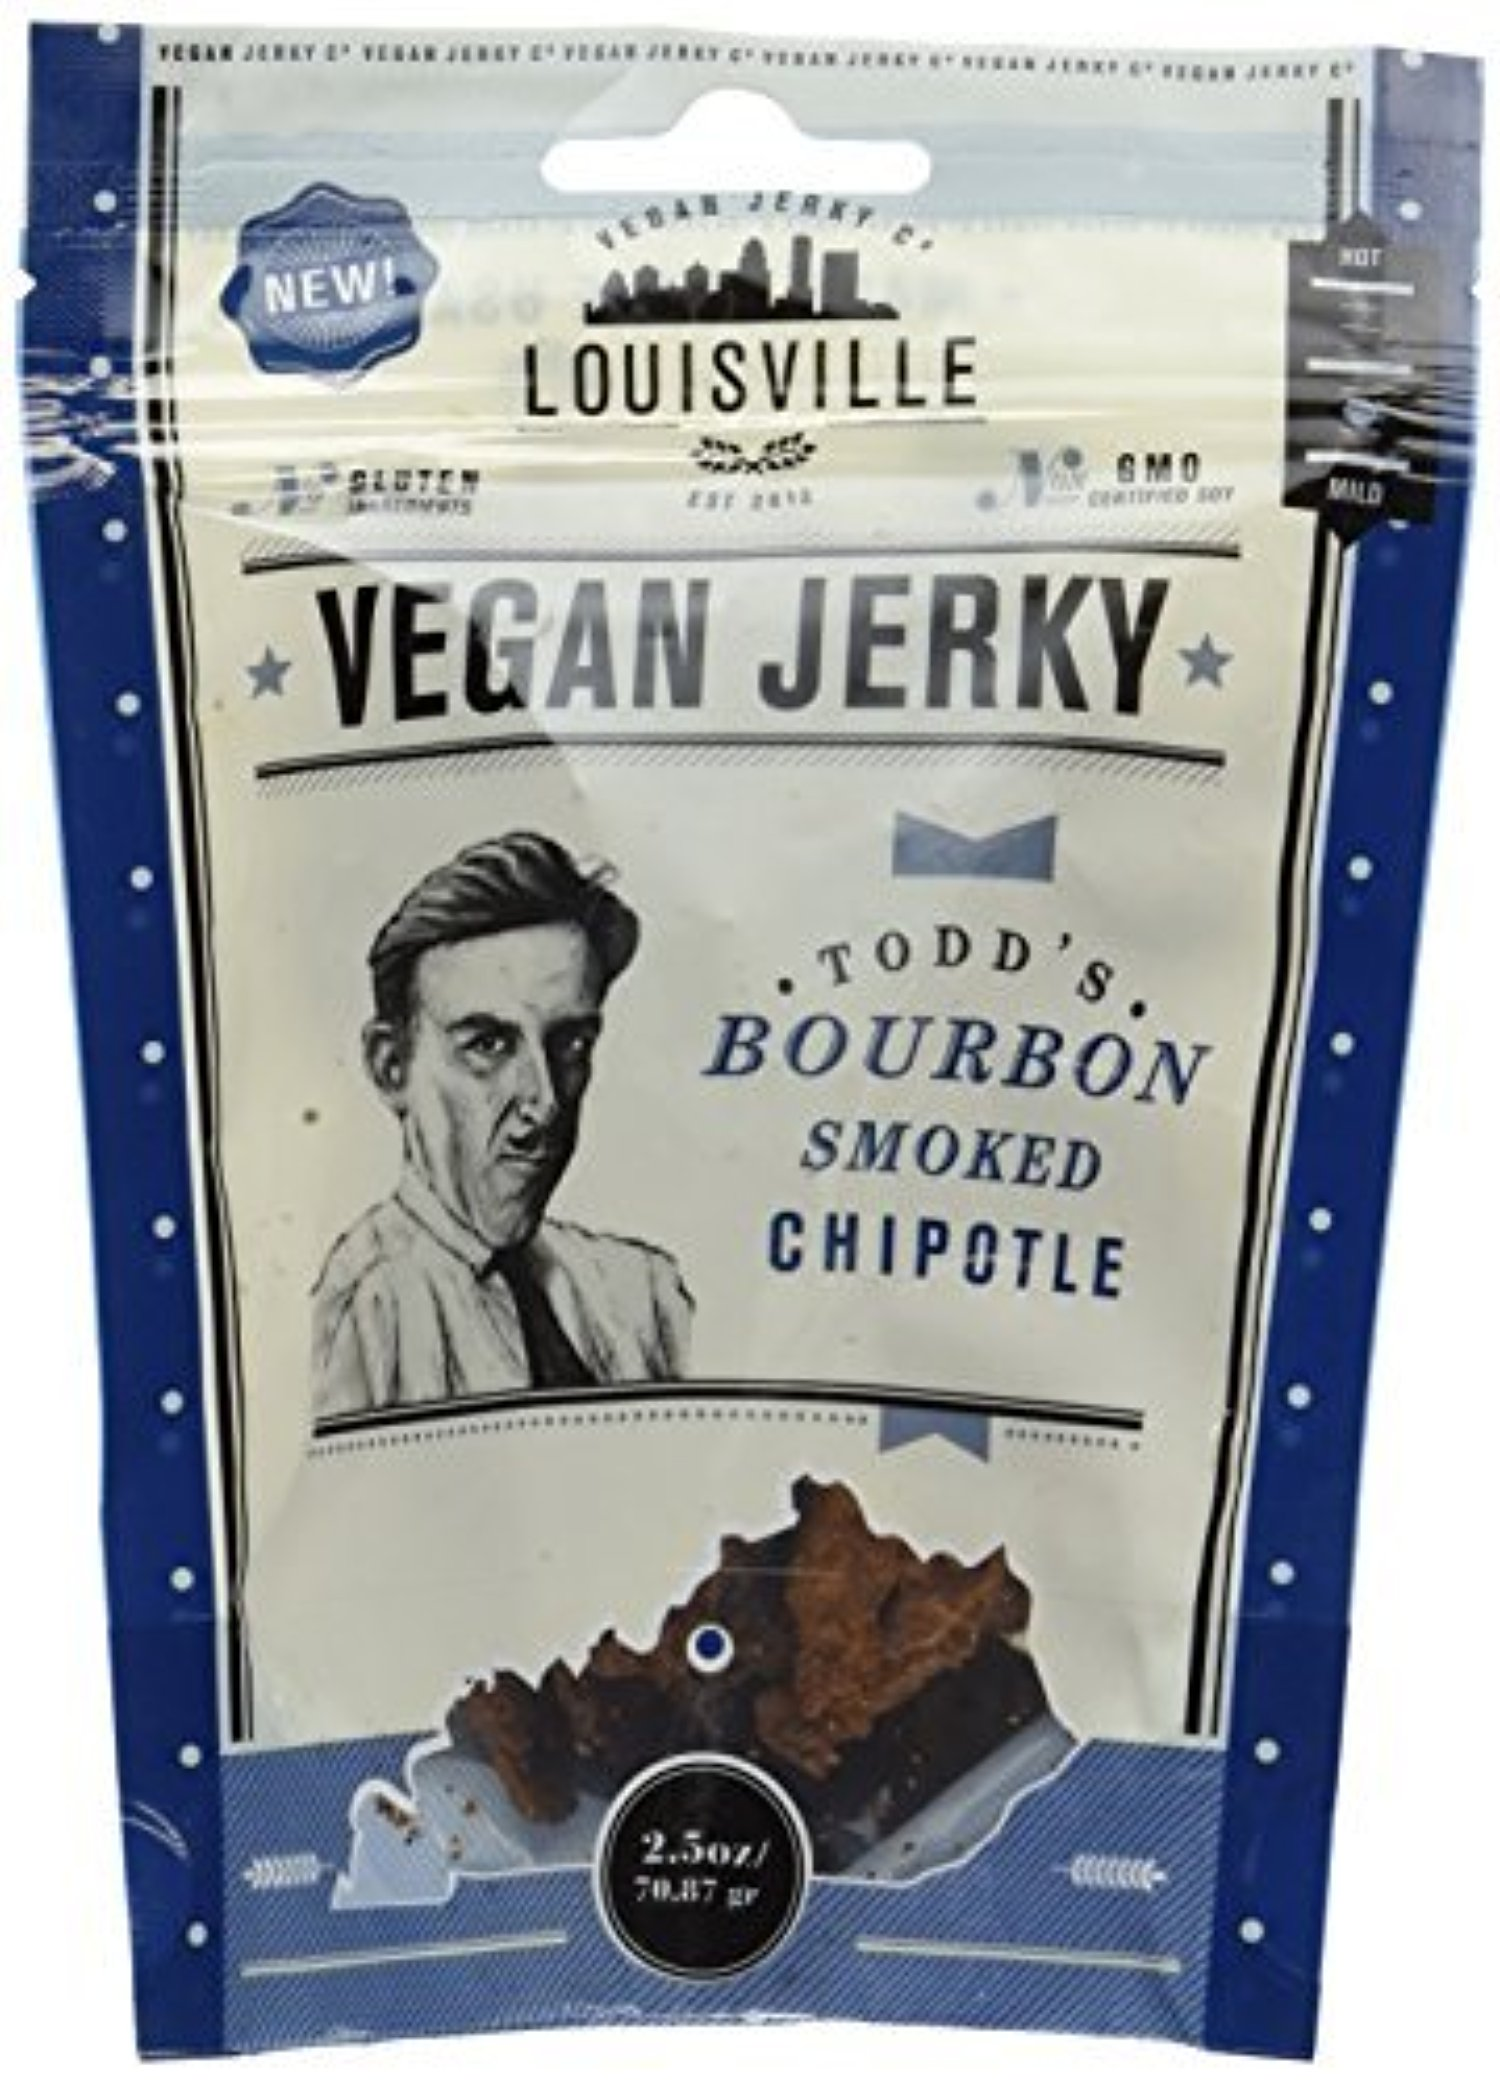 BOURBON SMOKED CHIPOTLE VEGAN JERKY